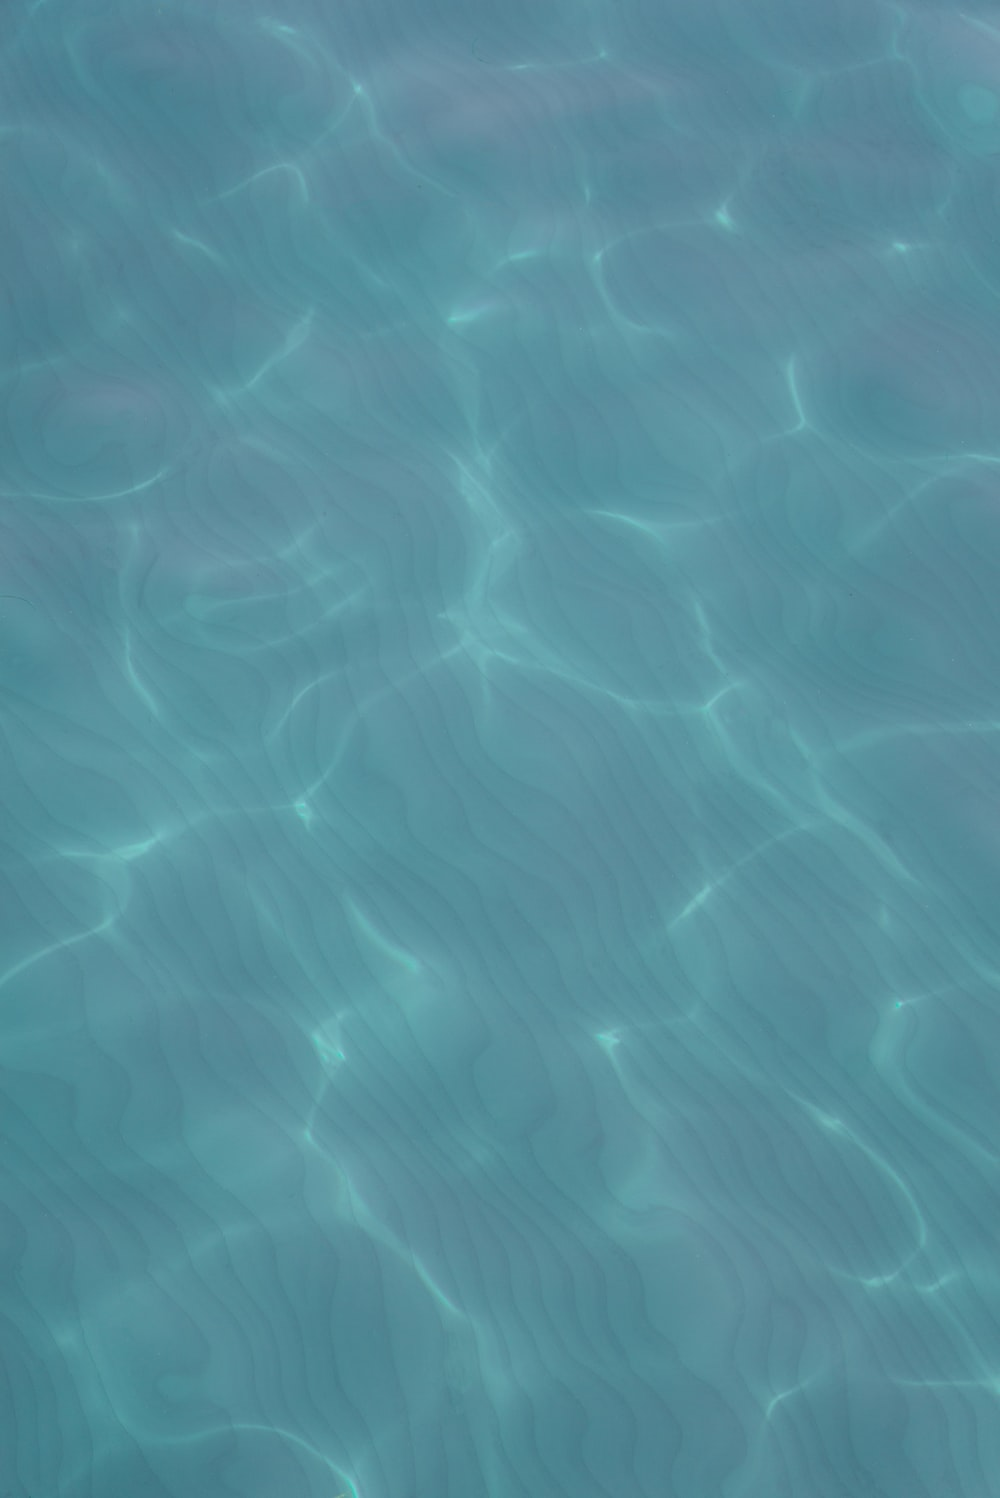 blue water with white light